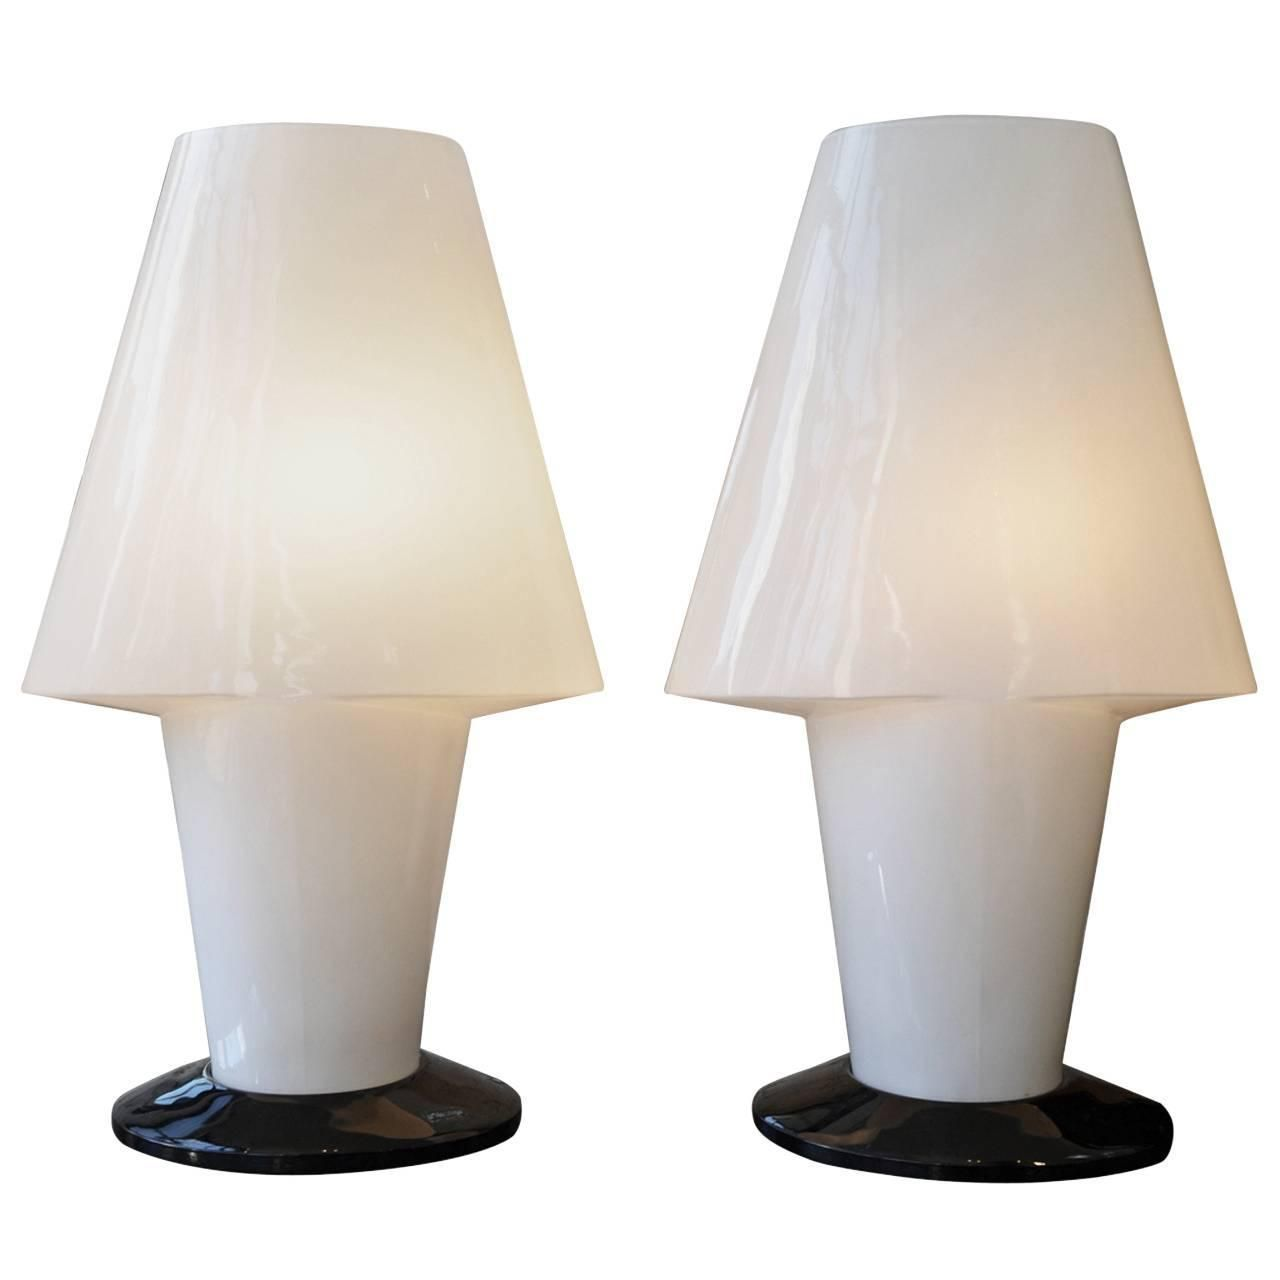 Pair of vintage italian murano table lamps by a v mazzega pair of vintage italian murano table lamps by a v mazzega mozeypictures Gallery